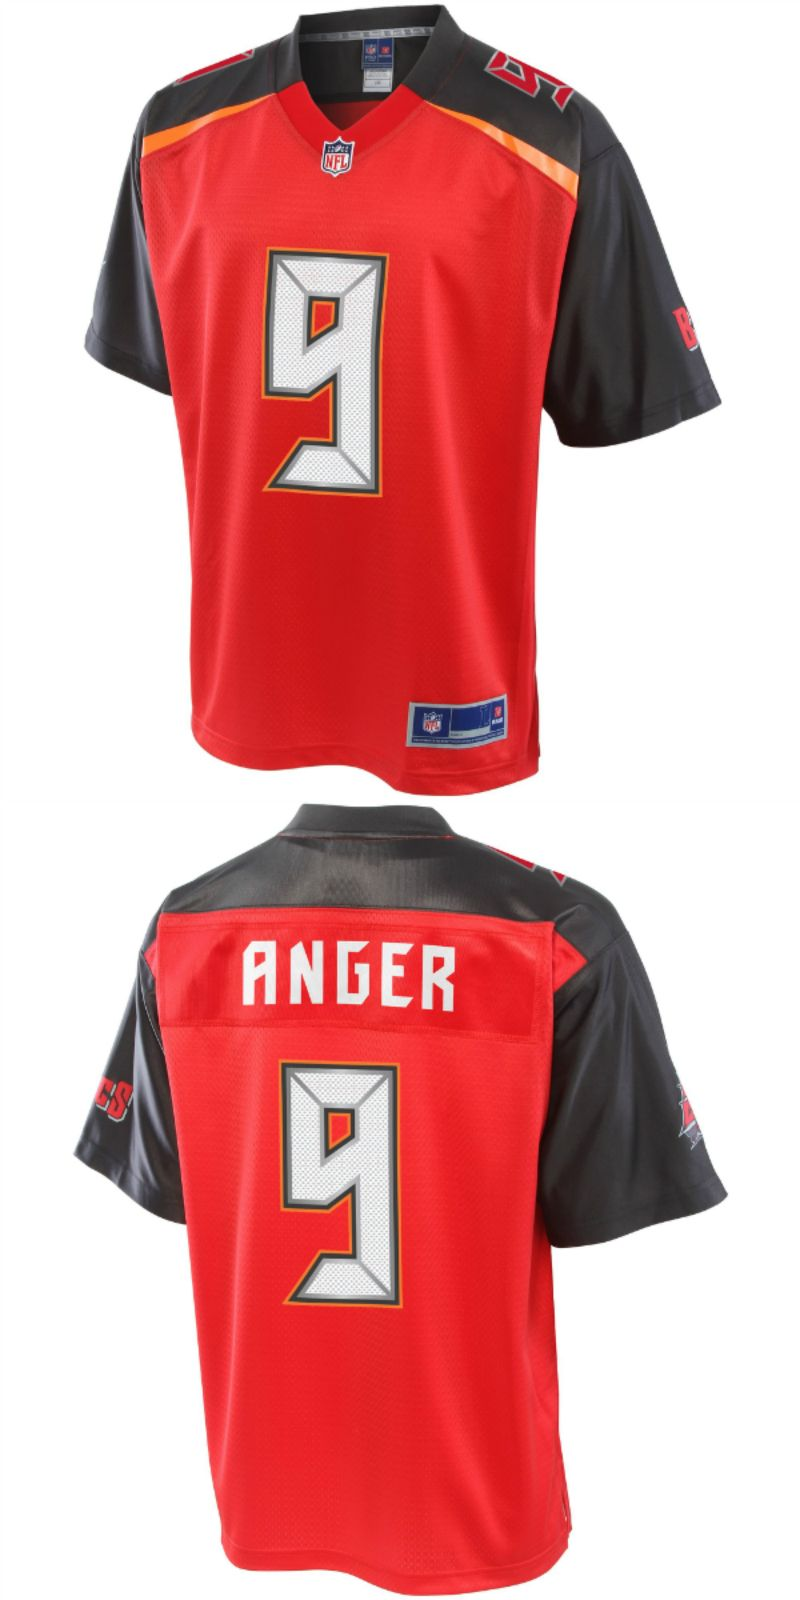 Up To 70 Off Bryan Anger Tampa Bay Buccaneers Nfl Pro Line Player Jersey Red Tampa Bay Buccaneers Quilts Antonio Brown Merchandise Nfl Bucs Football Jersey